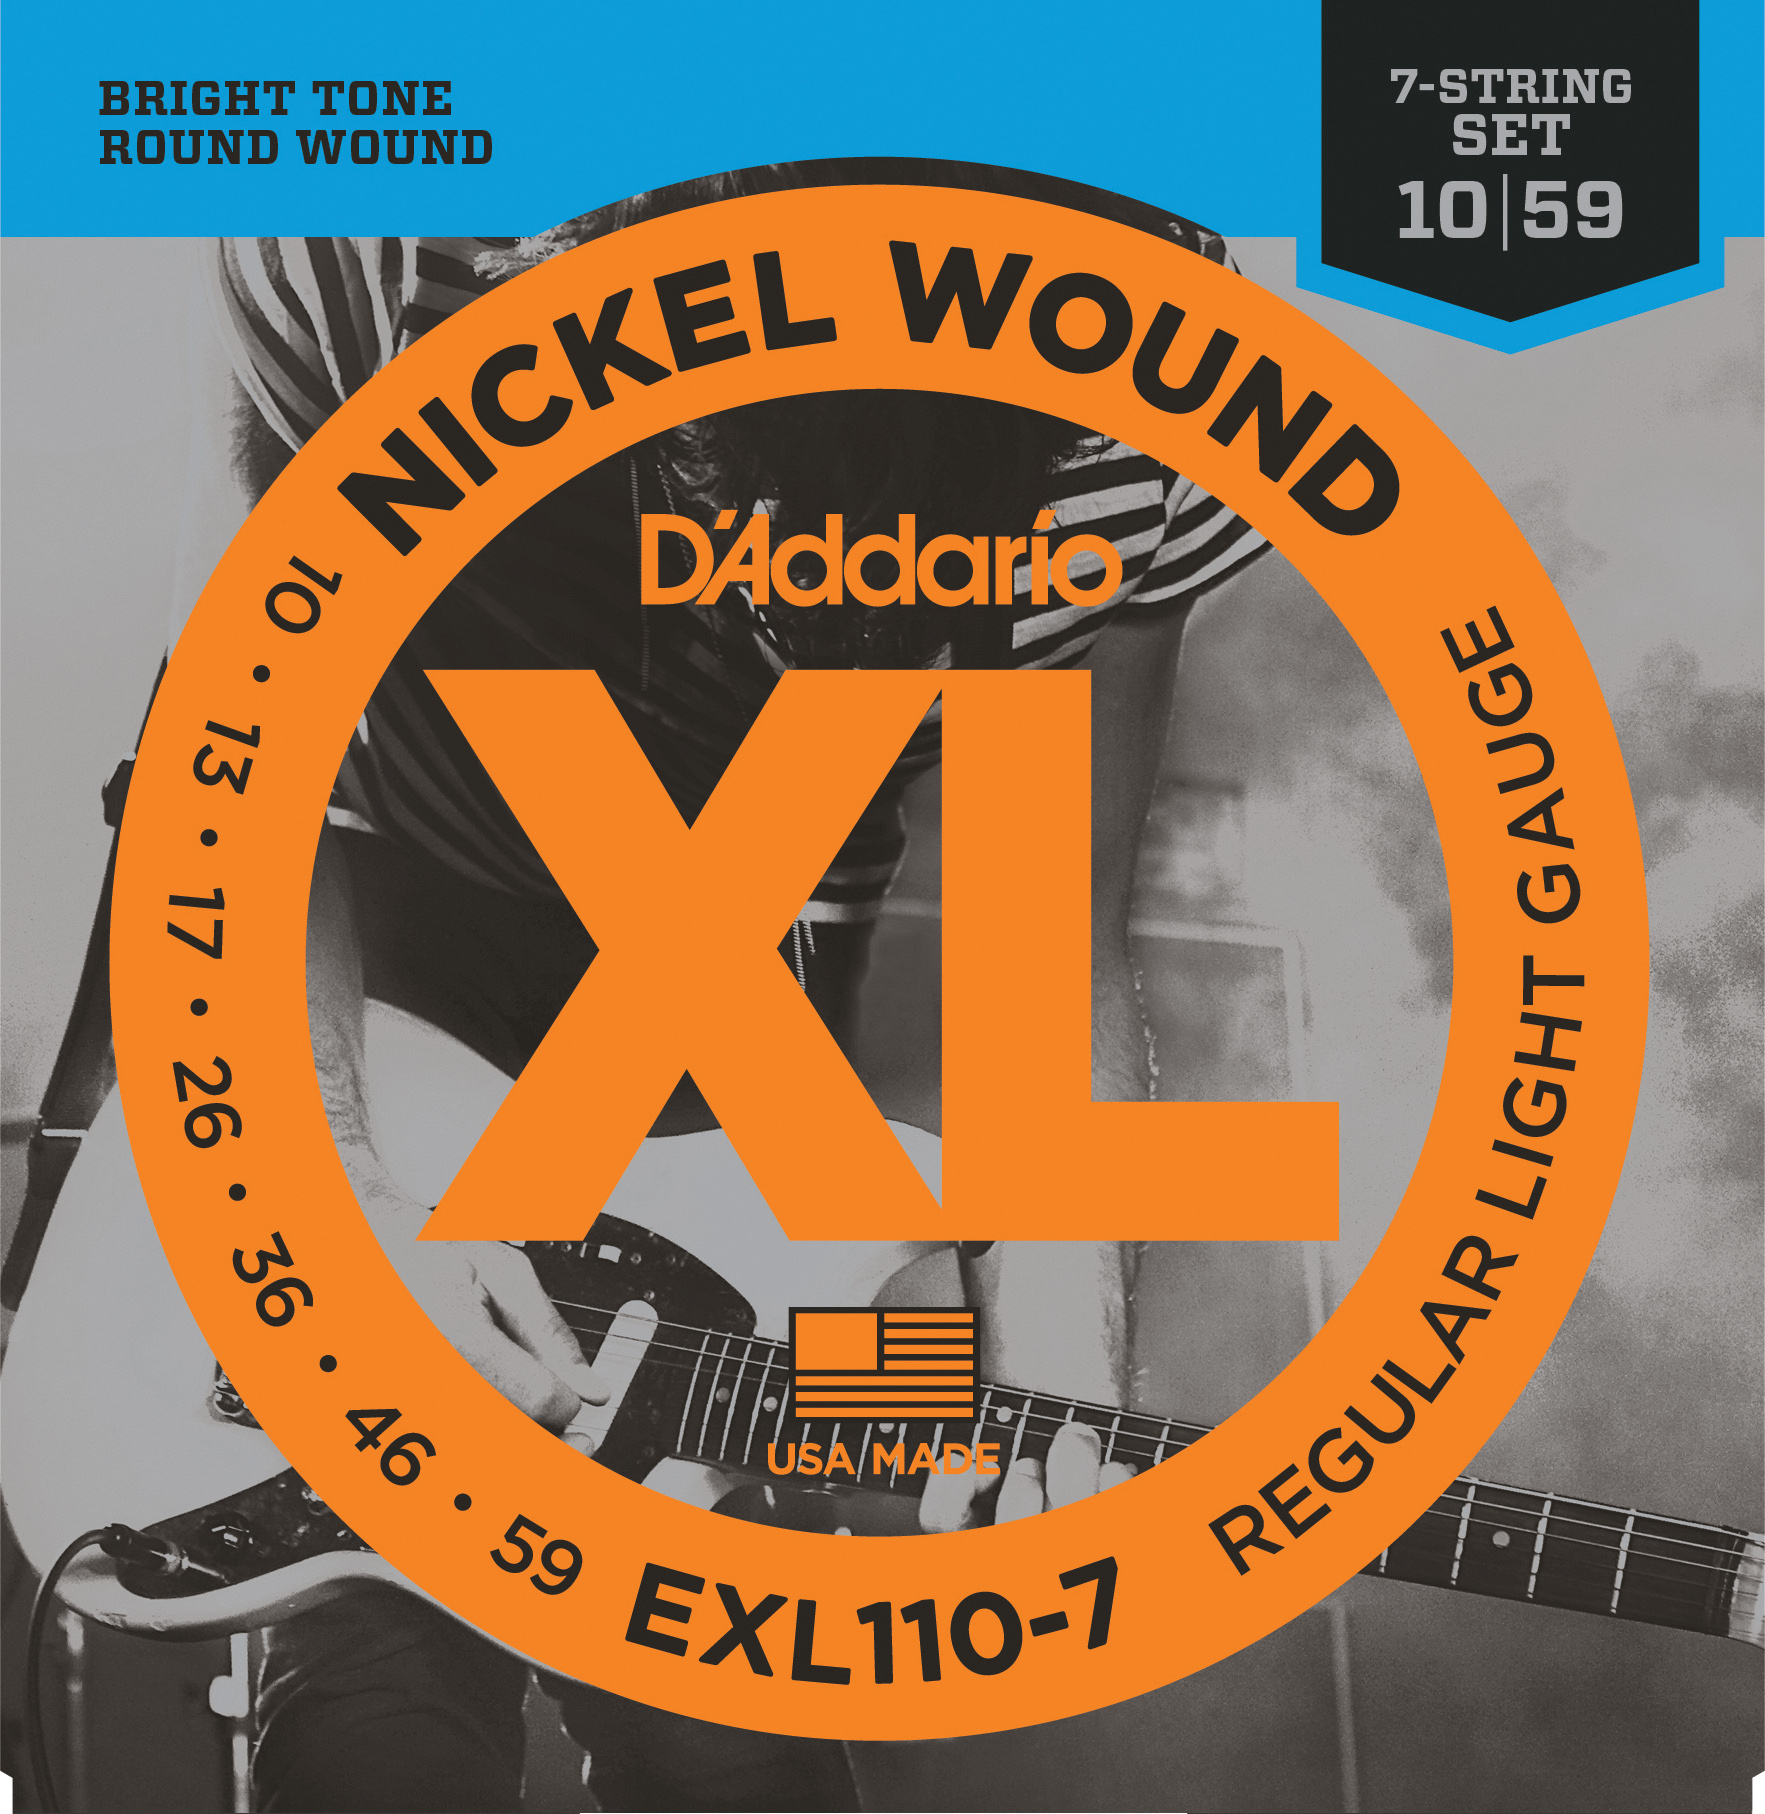 D'Addario Regular Light 7-string 10-59